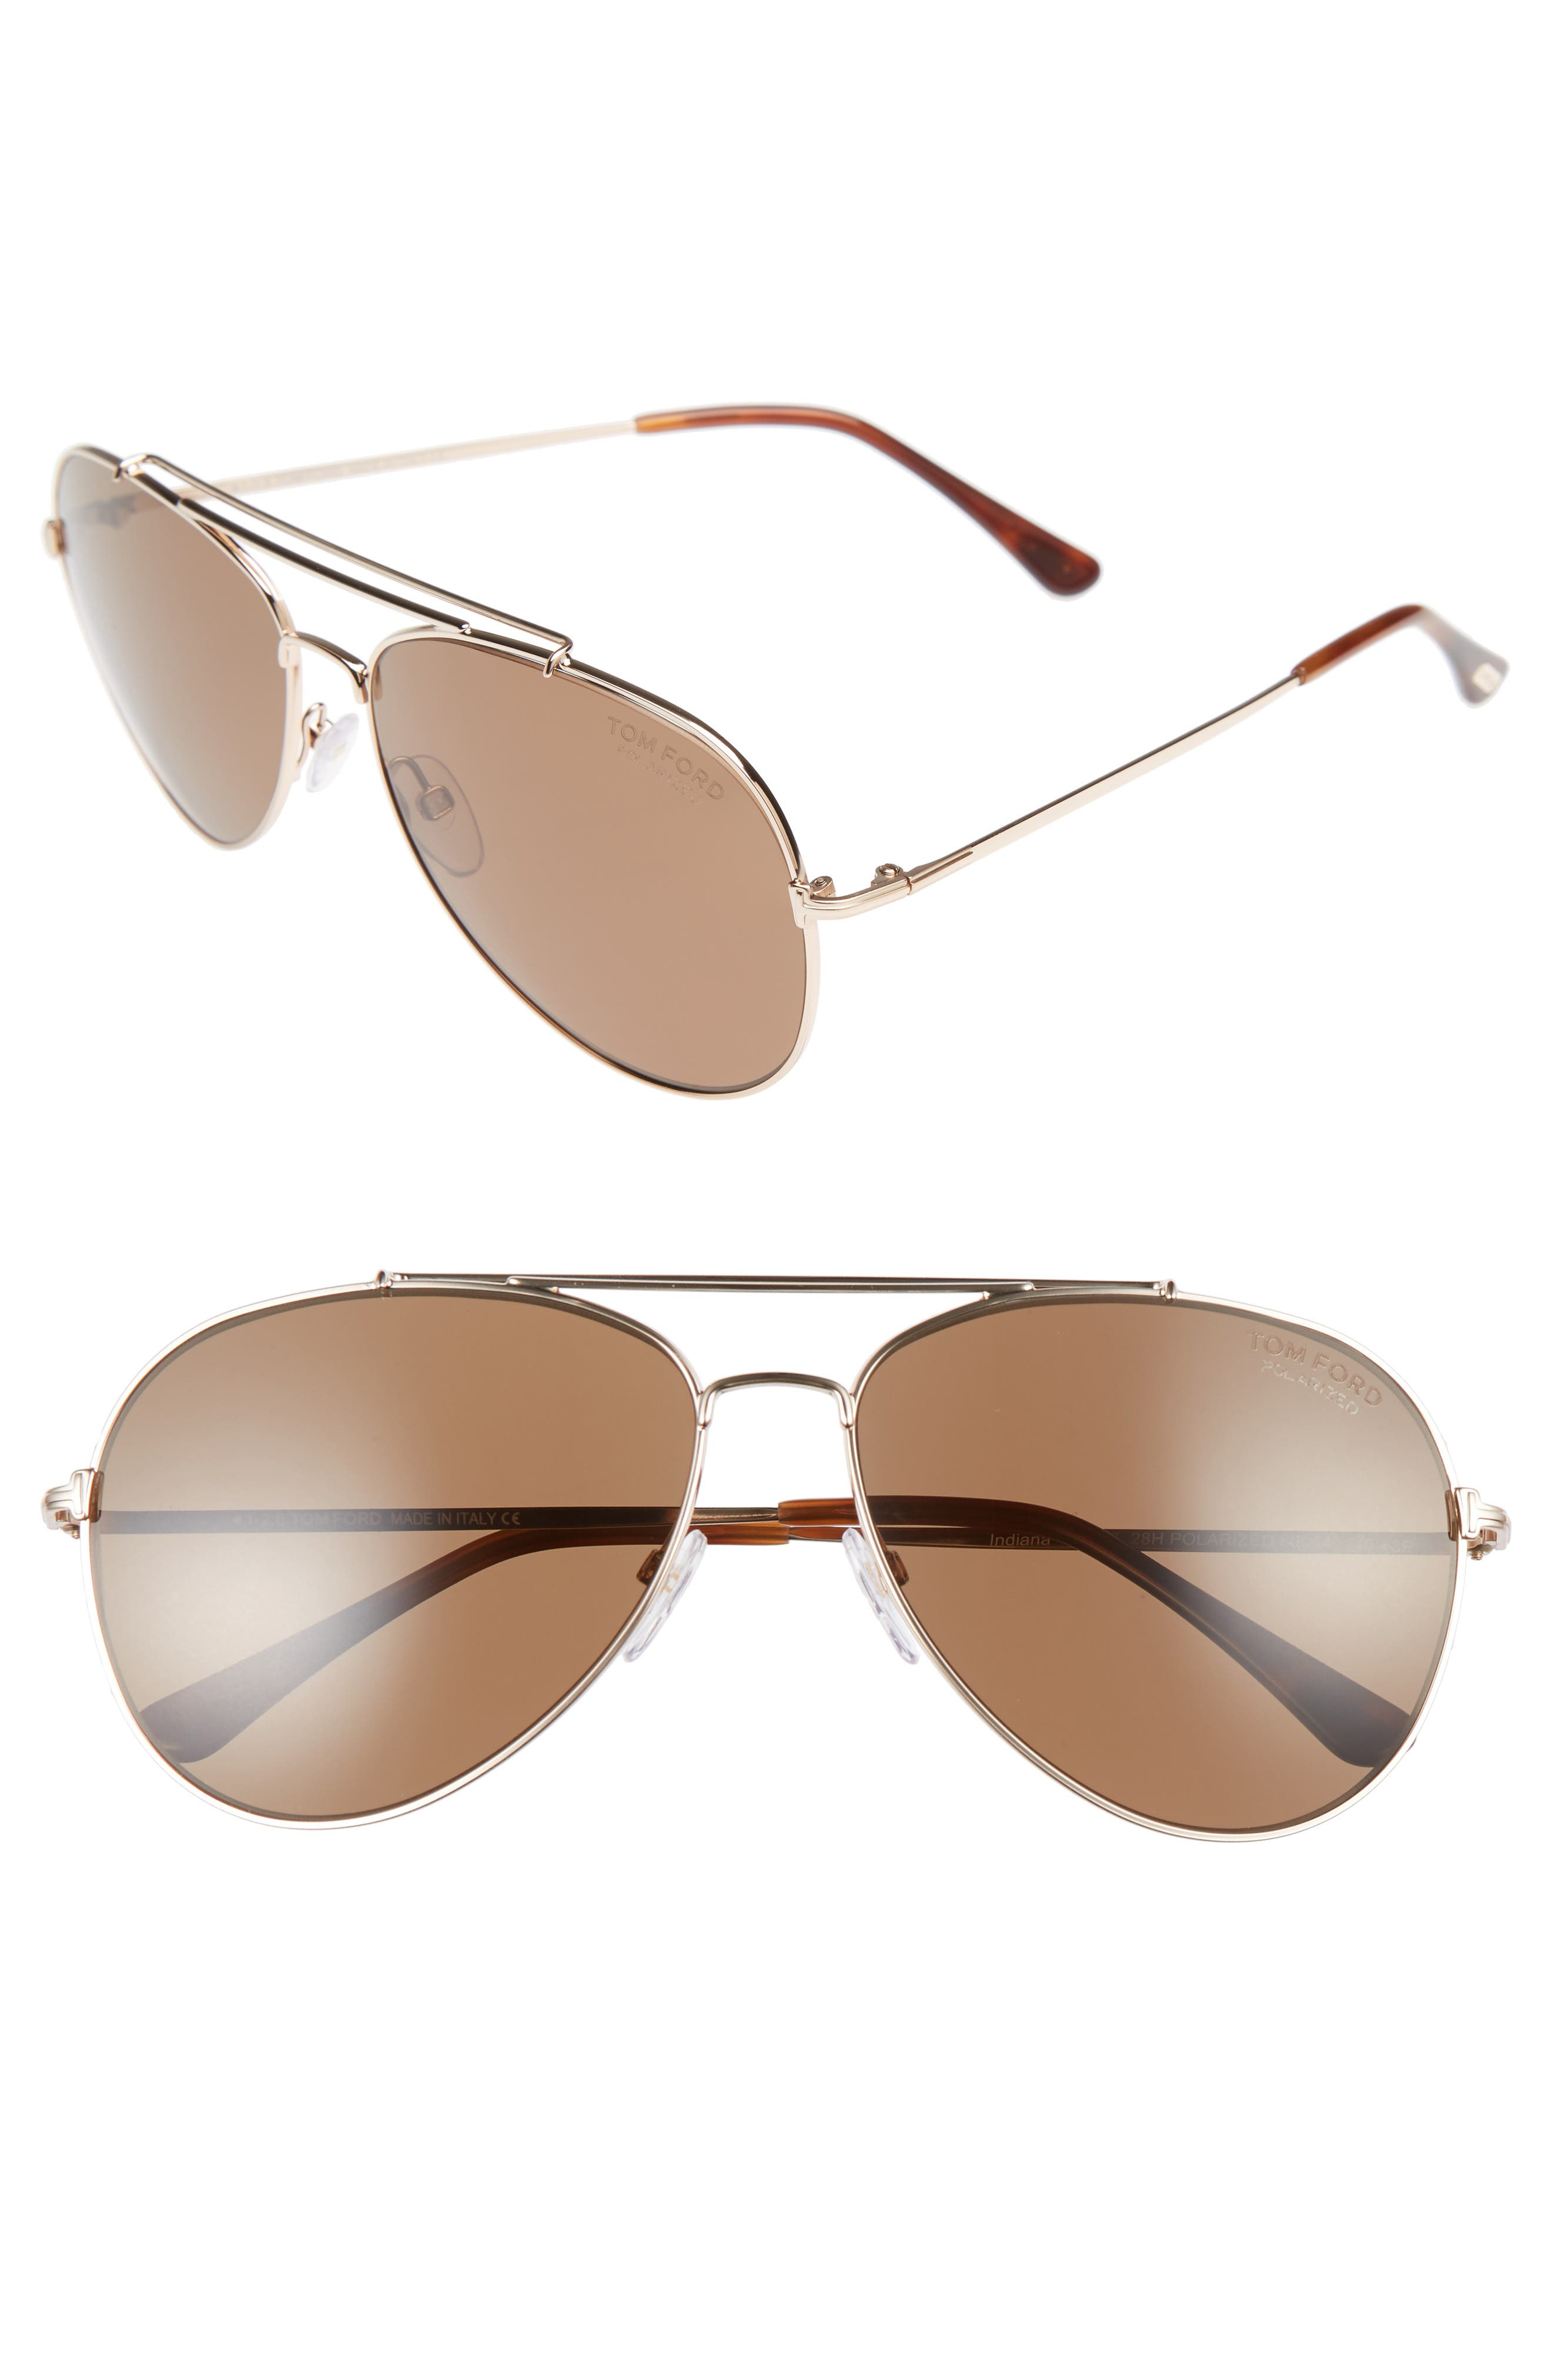 Alternate Image 1 Selected - Tom Ford Indiana 60mm Polarized Aviator Sunglasses